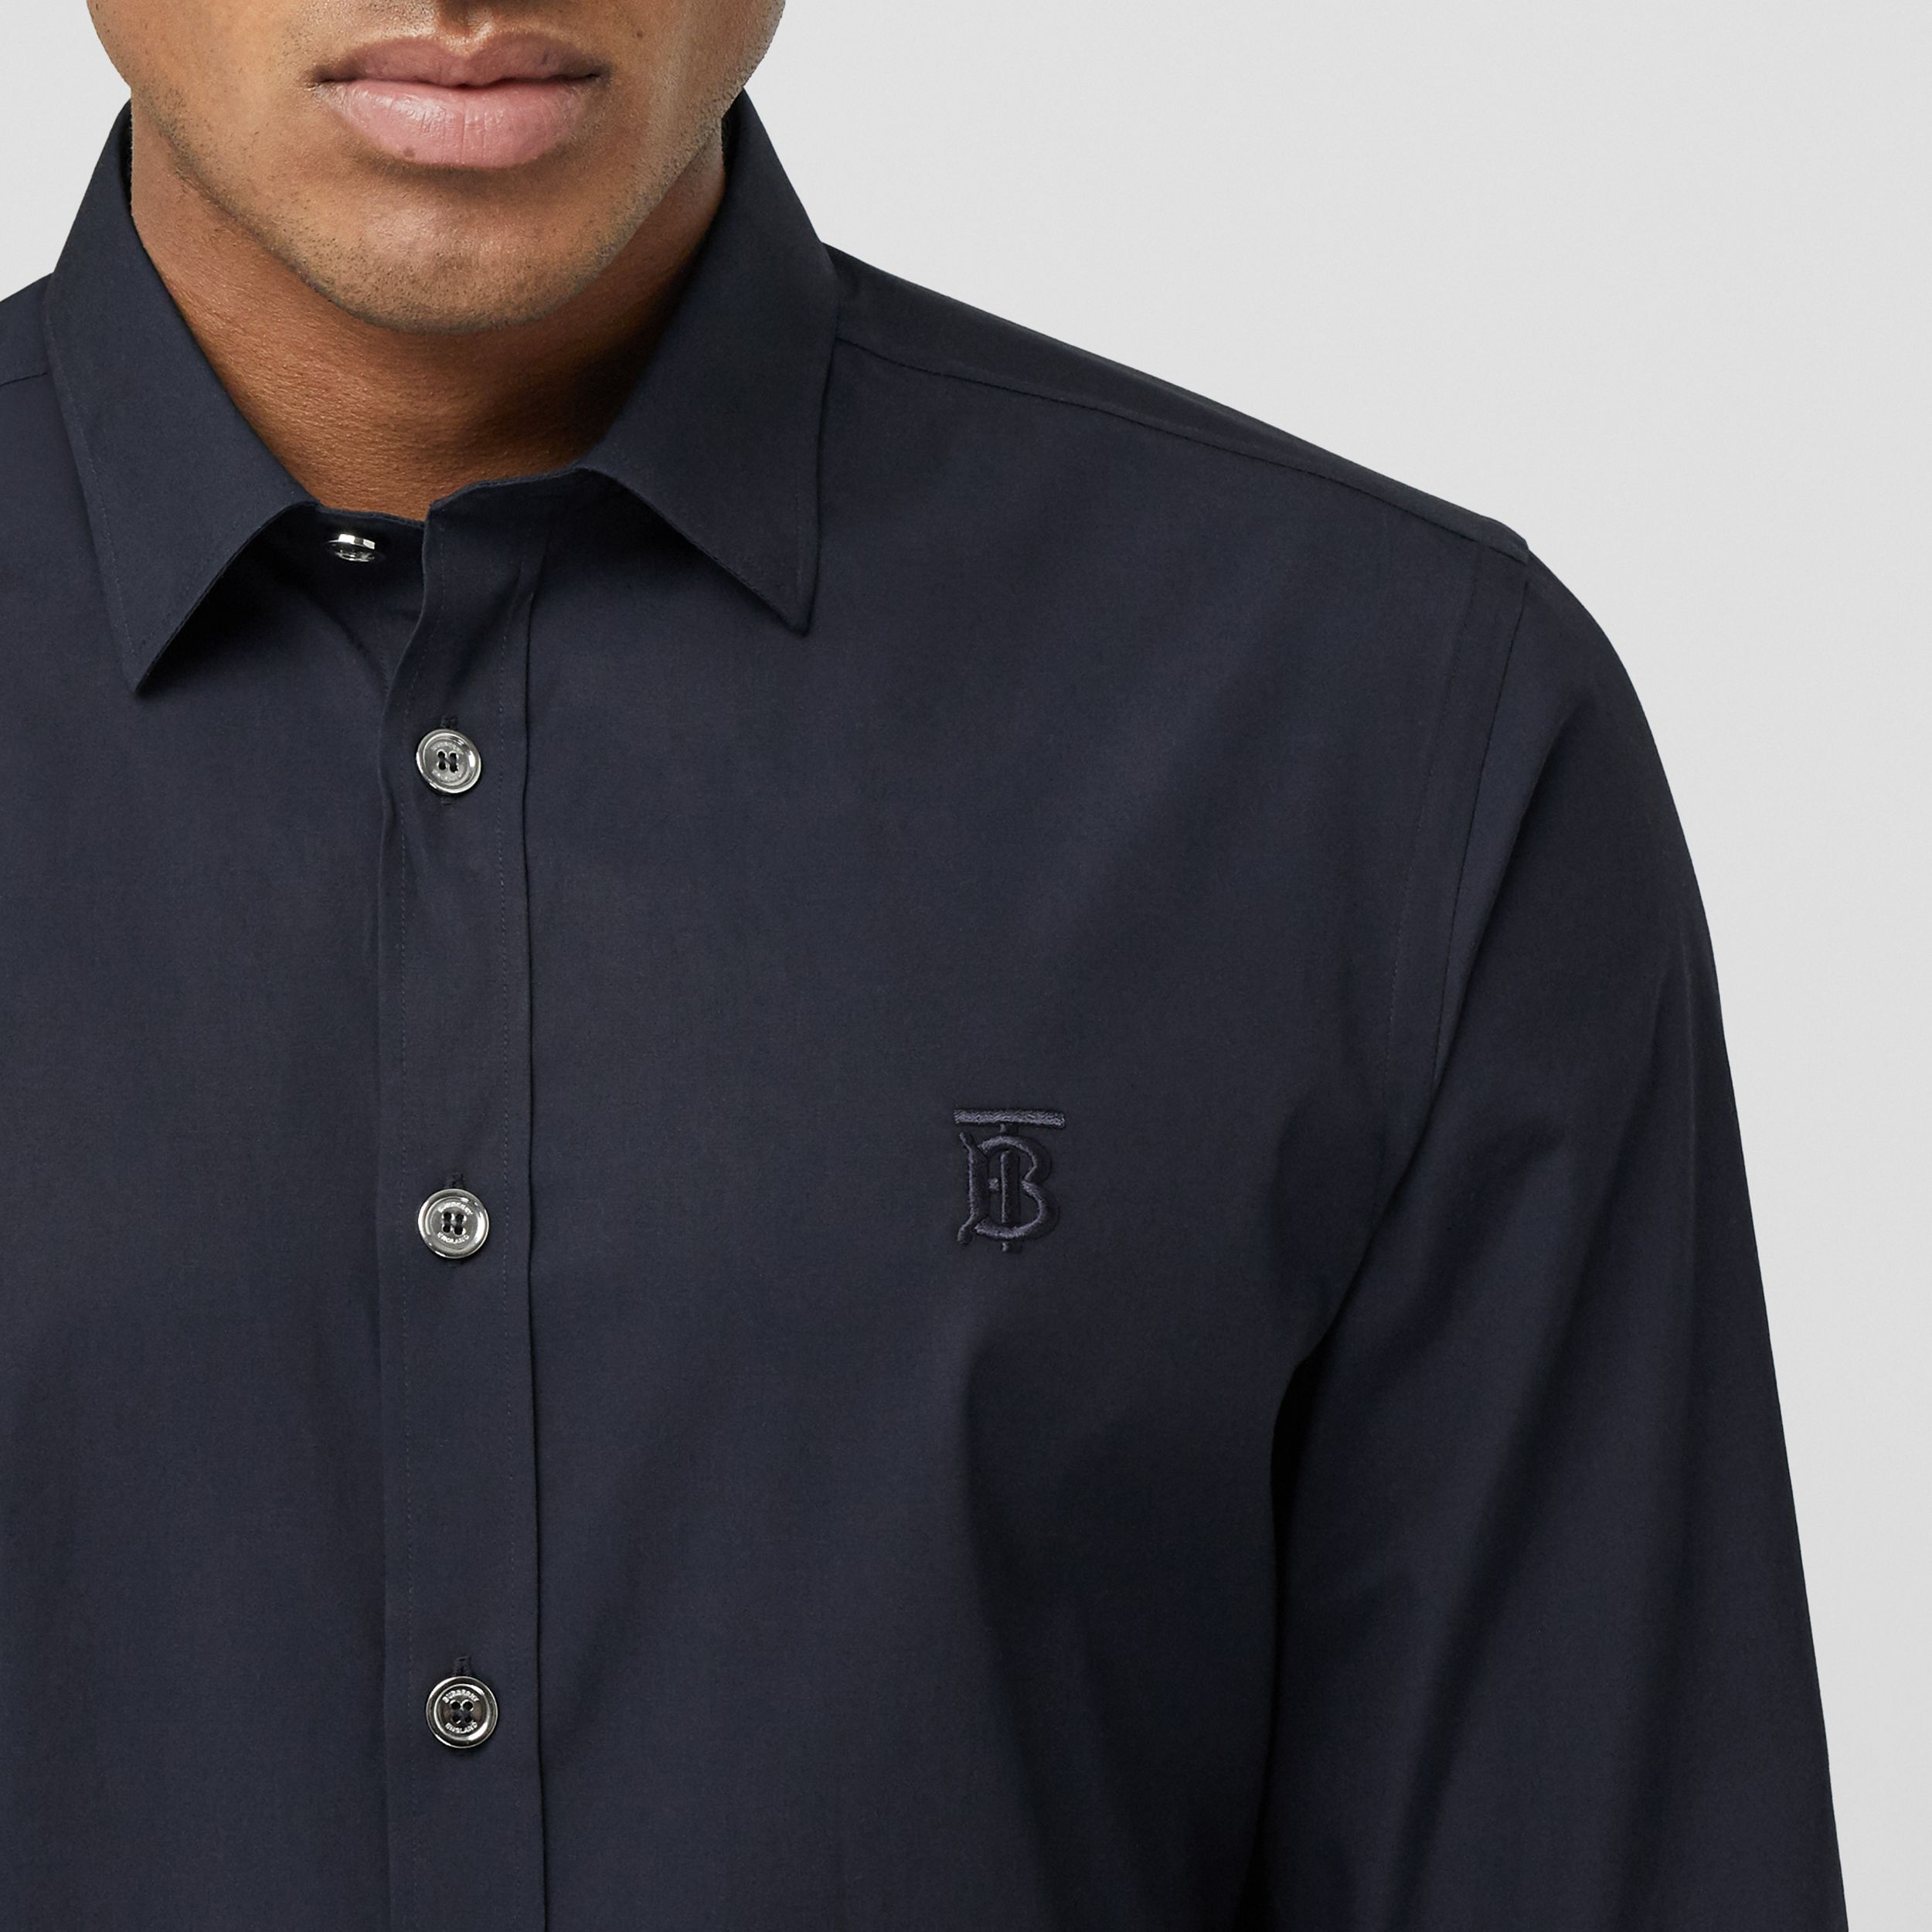 Monogram Motif Stretch Cotton Poplin Shirt in Navy - Men | Burberry - 2